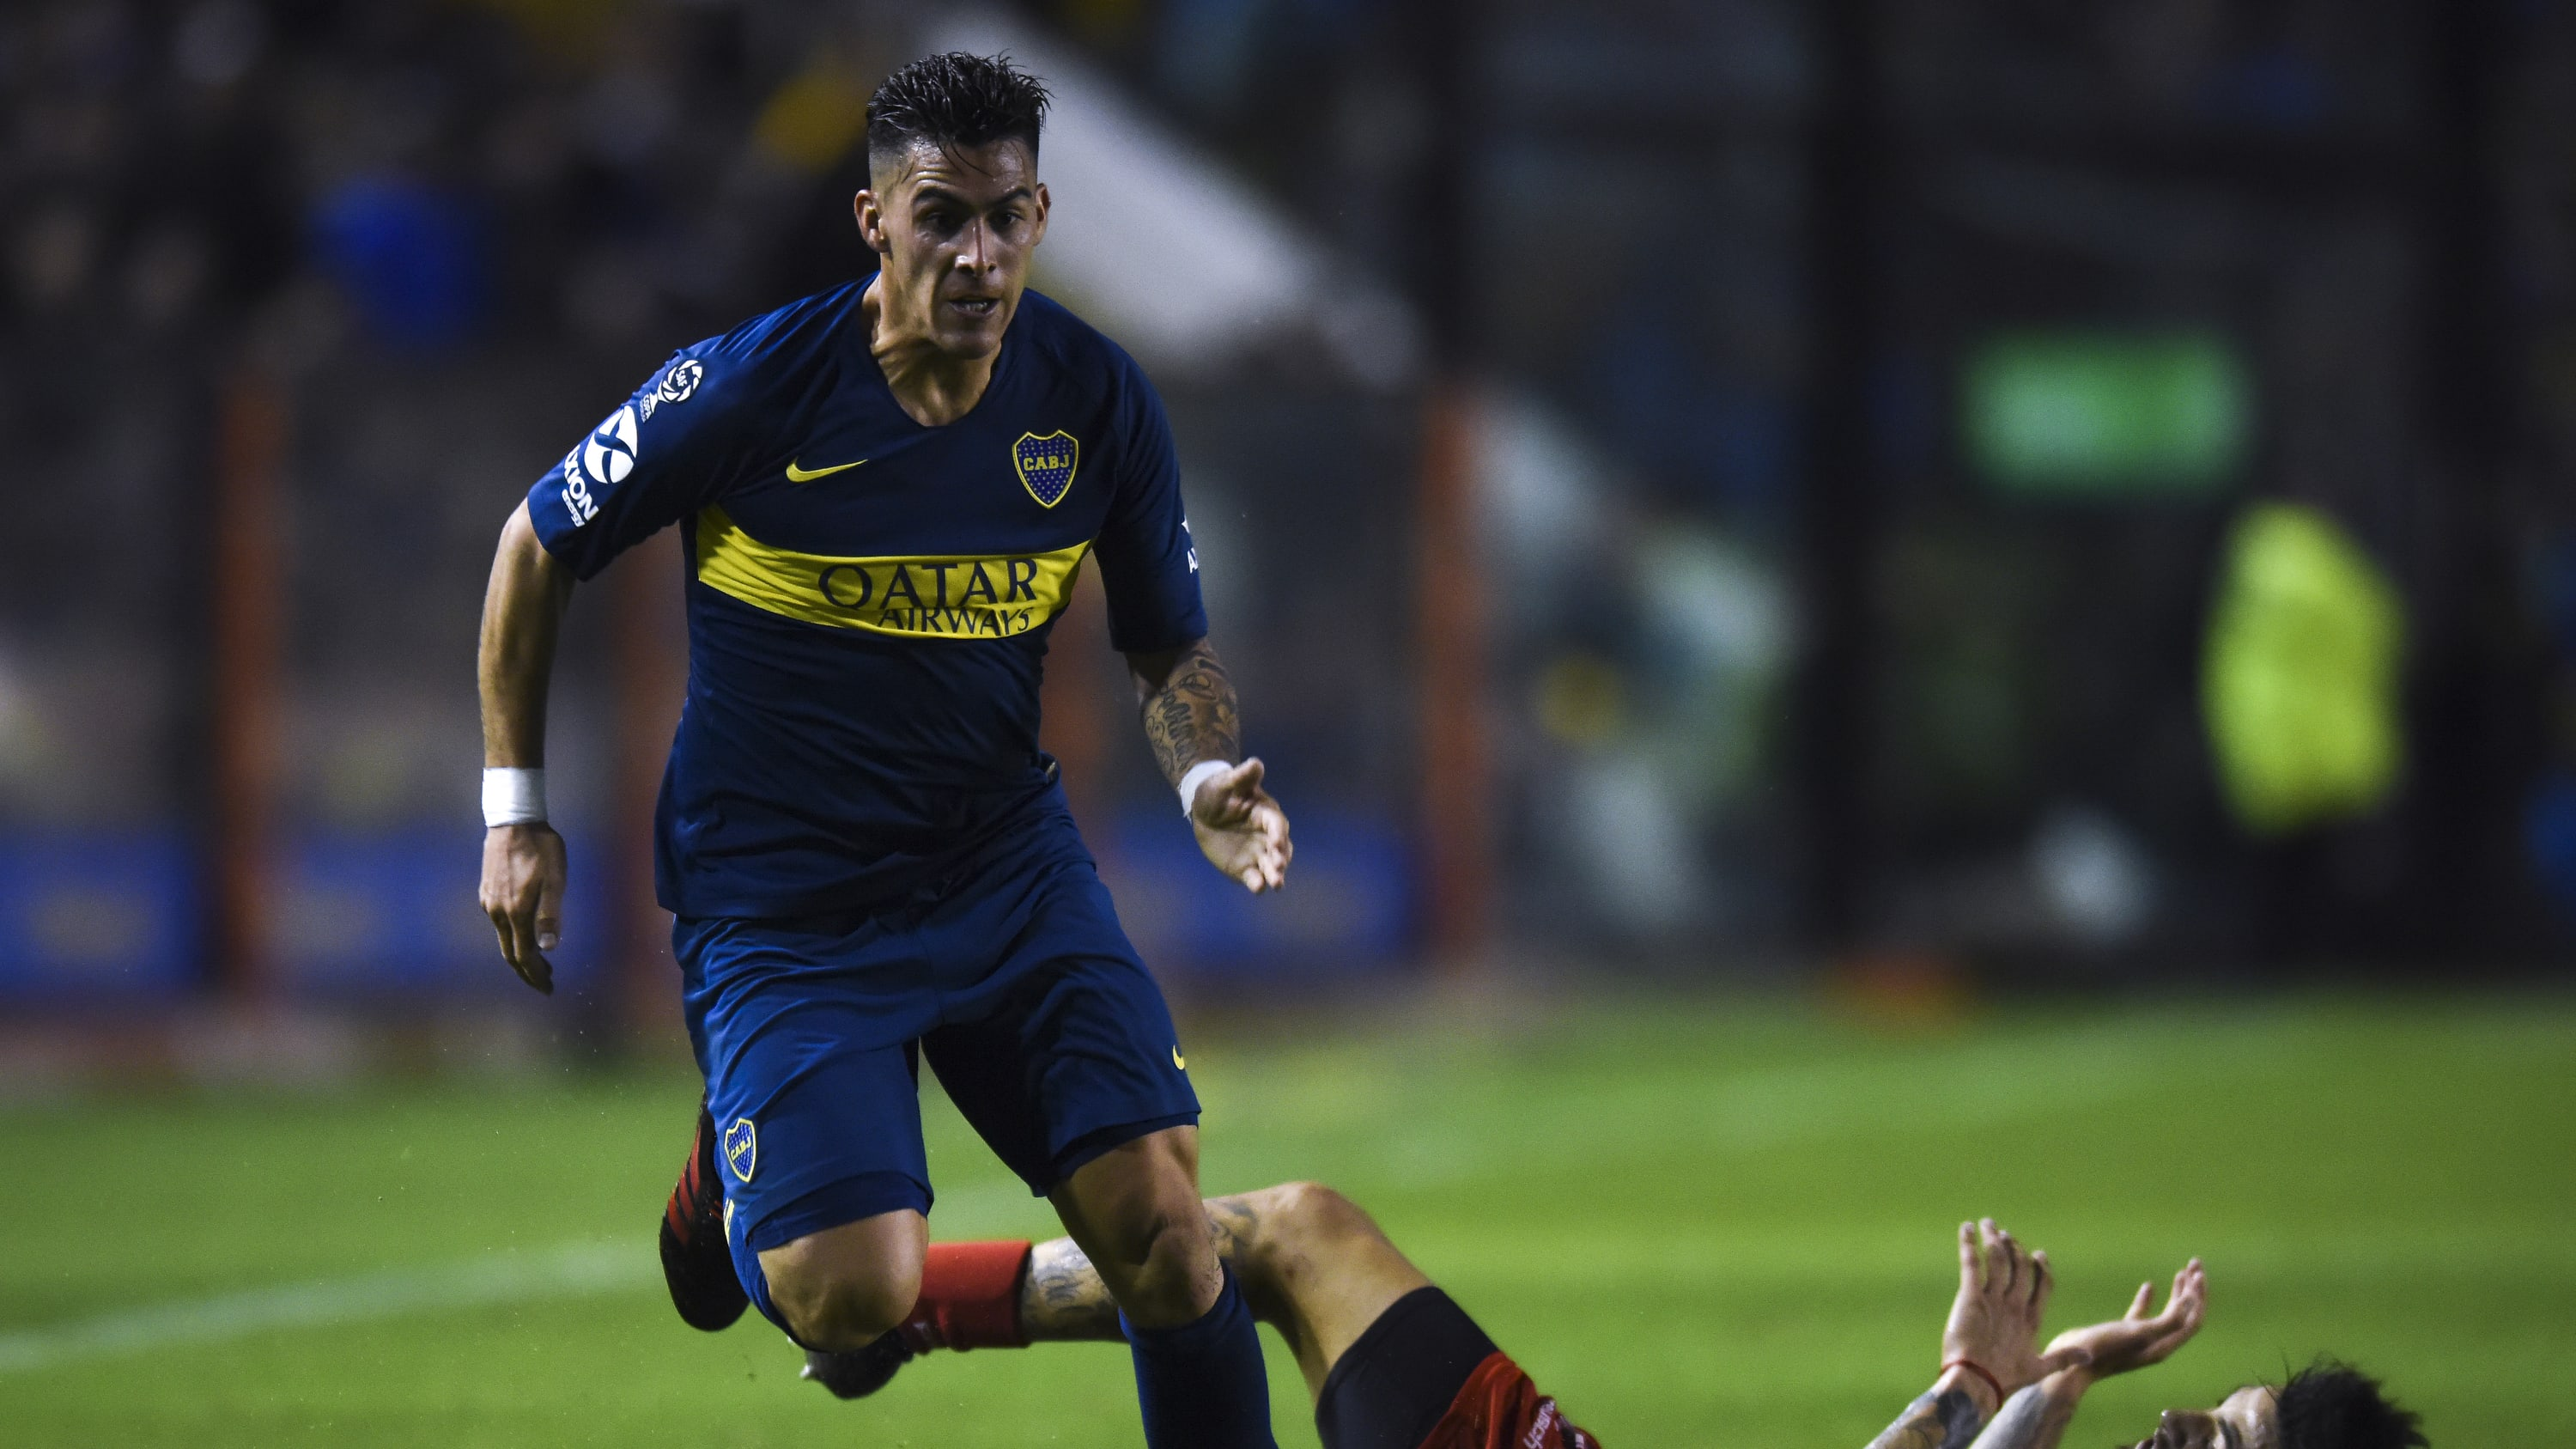 BUENOS AIRES, ARGENTINA - MAY 26:  Cristian Pavon of Boca Juniors fights for the ball with Elias Gomez of Argentinos Juniors during a second leg semifinal match between Boca Juniors and Argentinos Juniors as part of Copa de la Superliga 2019 at Estadio Alberto J. Armando on May 26, 2019 in Buenos Aires, Argentina. (Photo by Marcelo Endelli/Getty Images)